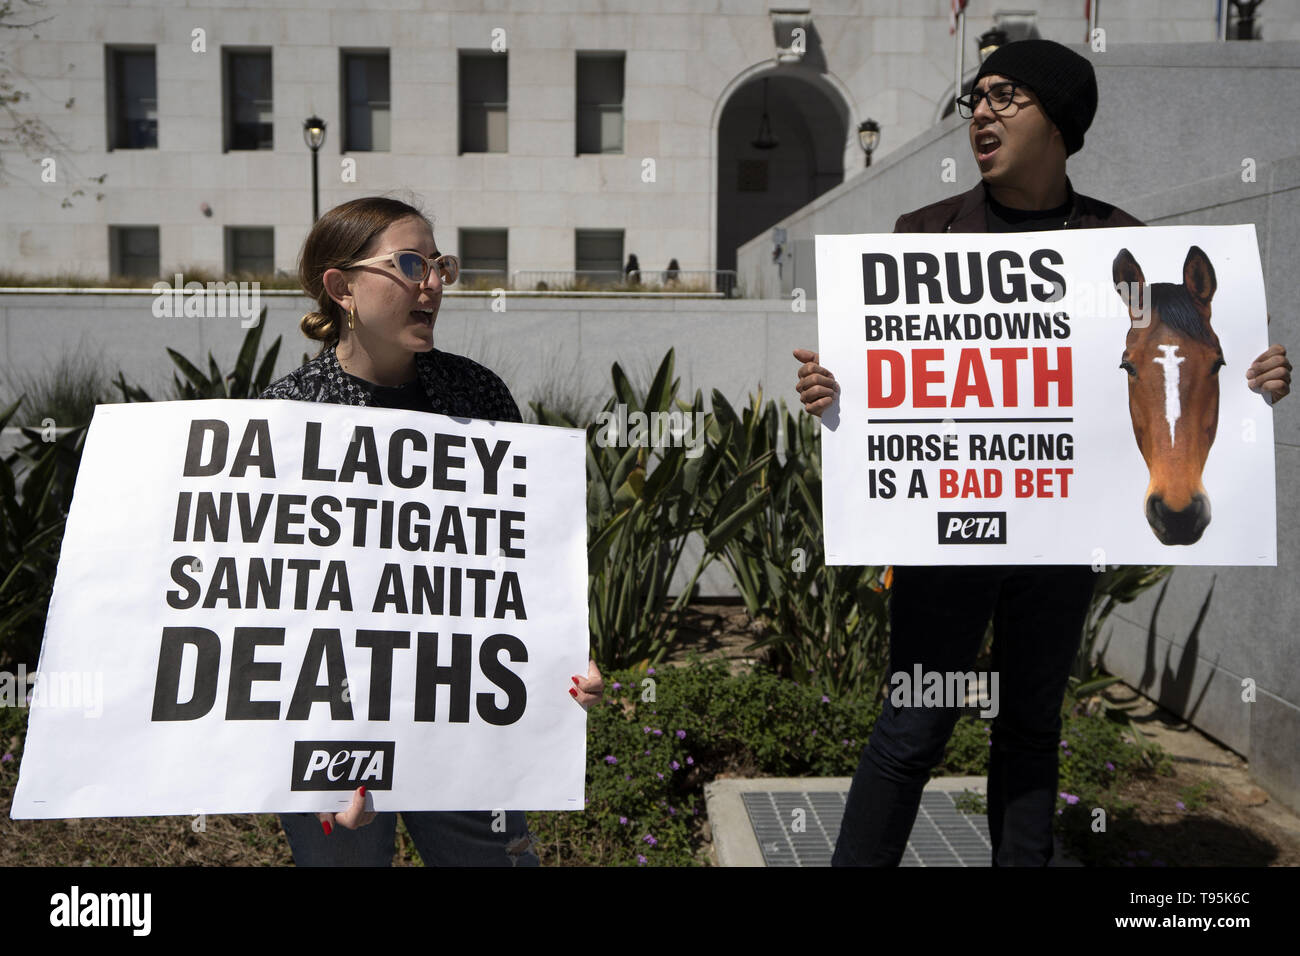 Los Angeles, CA, USA. 14th Mar, 2019. Demonstrators are seen holding placards during the protest.Animal right activists held a PETA protest against the death of 22 horses at the Santa Anita Racetrack. The protesters holding placards also called on the Los Angeles District Attorney to open a criminal investigation and suspend racing while investigating the cause of the death. Credit: Ronen Tivony/SOPA Images/ZUMA Wire/Alamy Live News - Stock Image